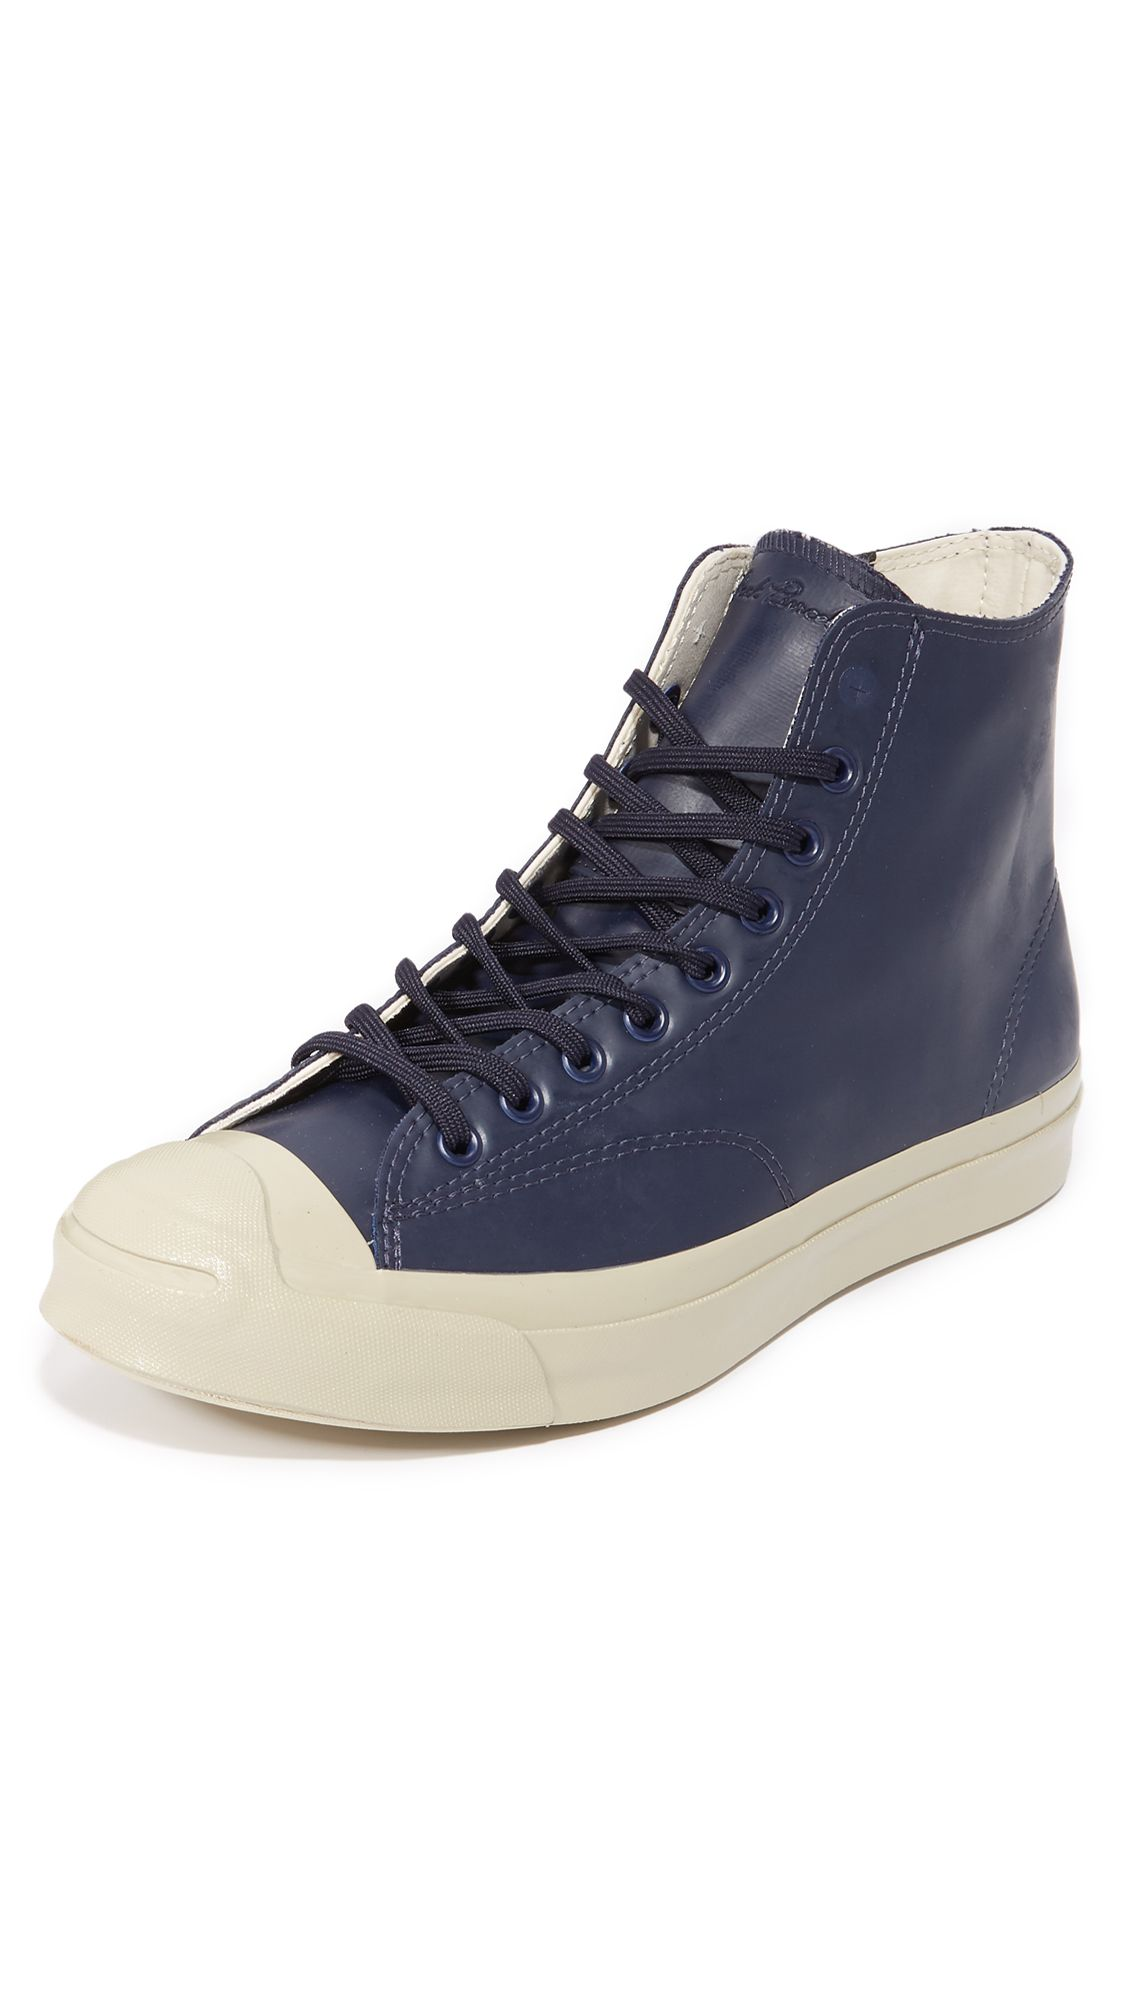 bb4a0449093c7d CONVERSE Jack Purcell Signature Rubber High Top Sneakers.  converse  shoes   sneakers